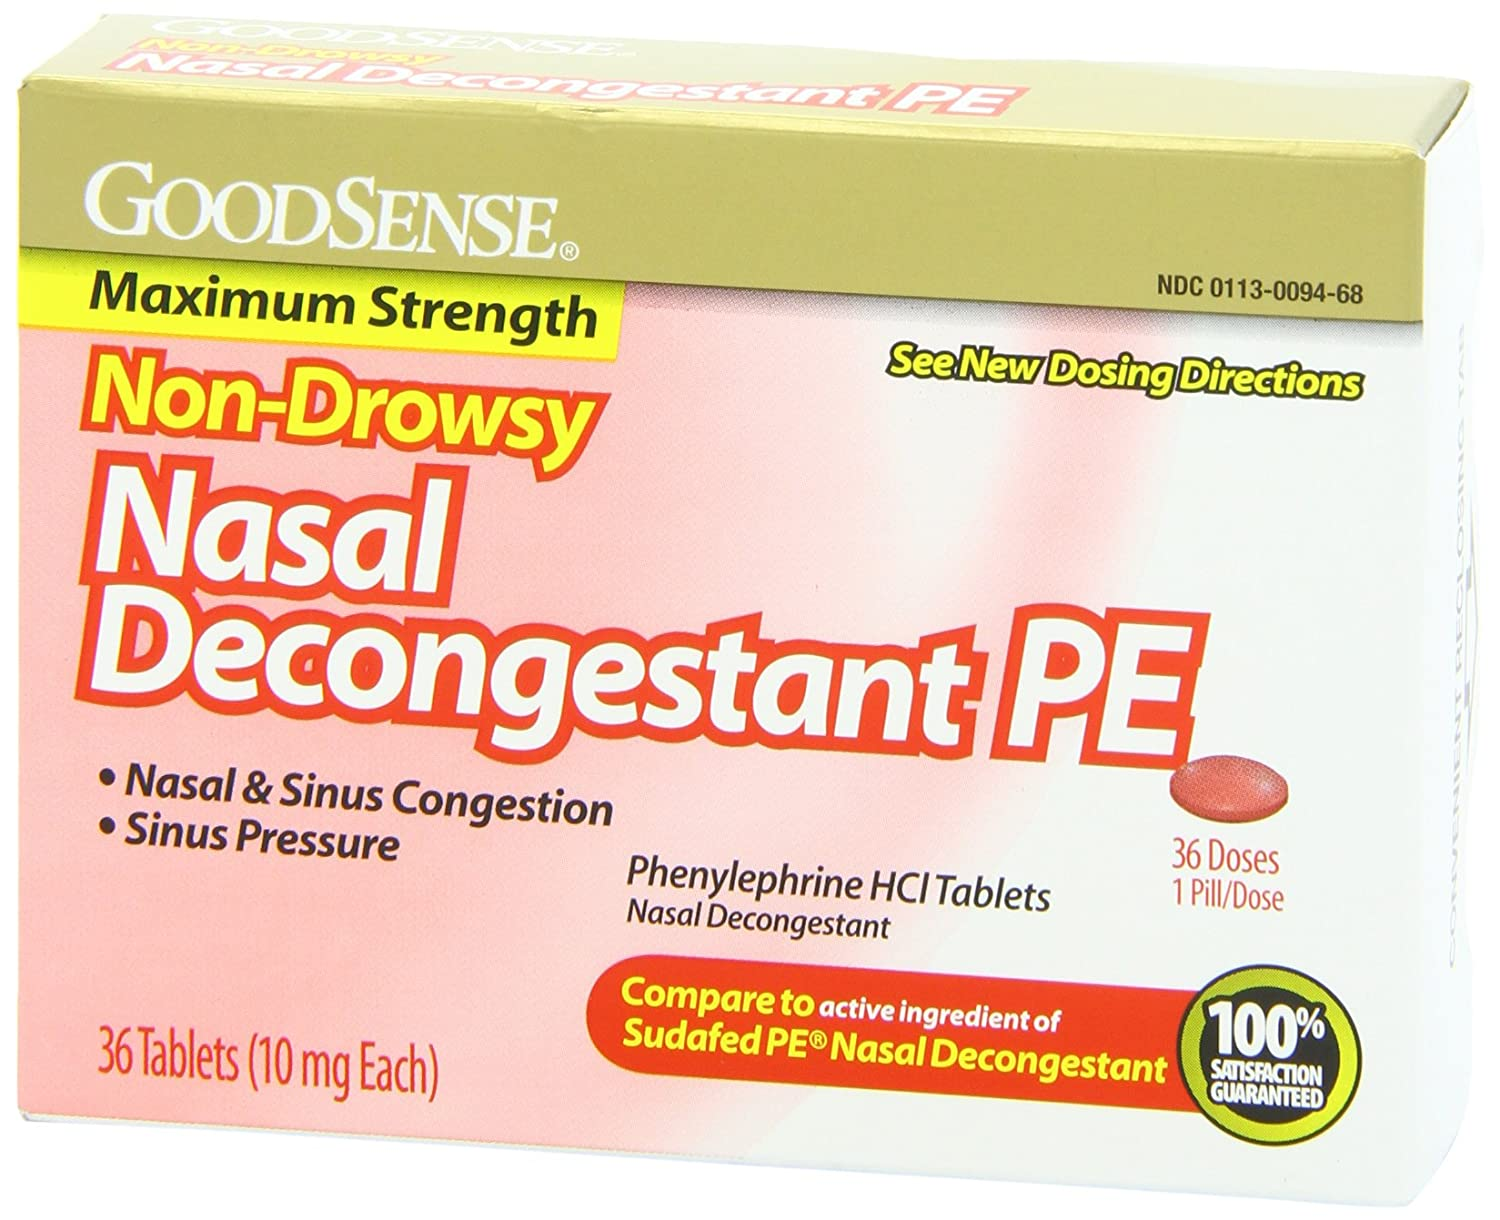 Polydex Nasal Spray for Children - reviews, instructions for use and composition 97